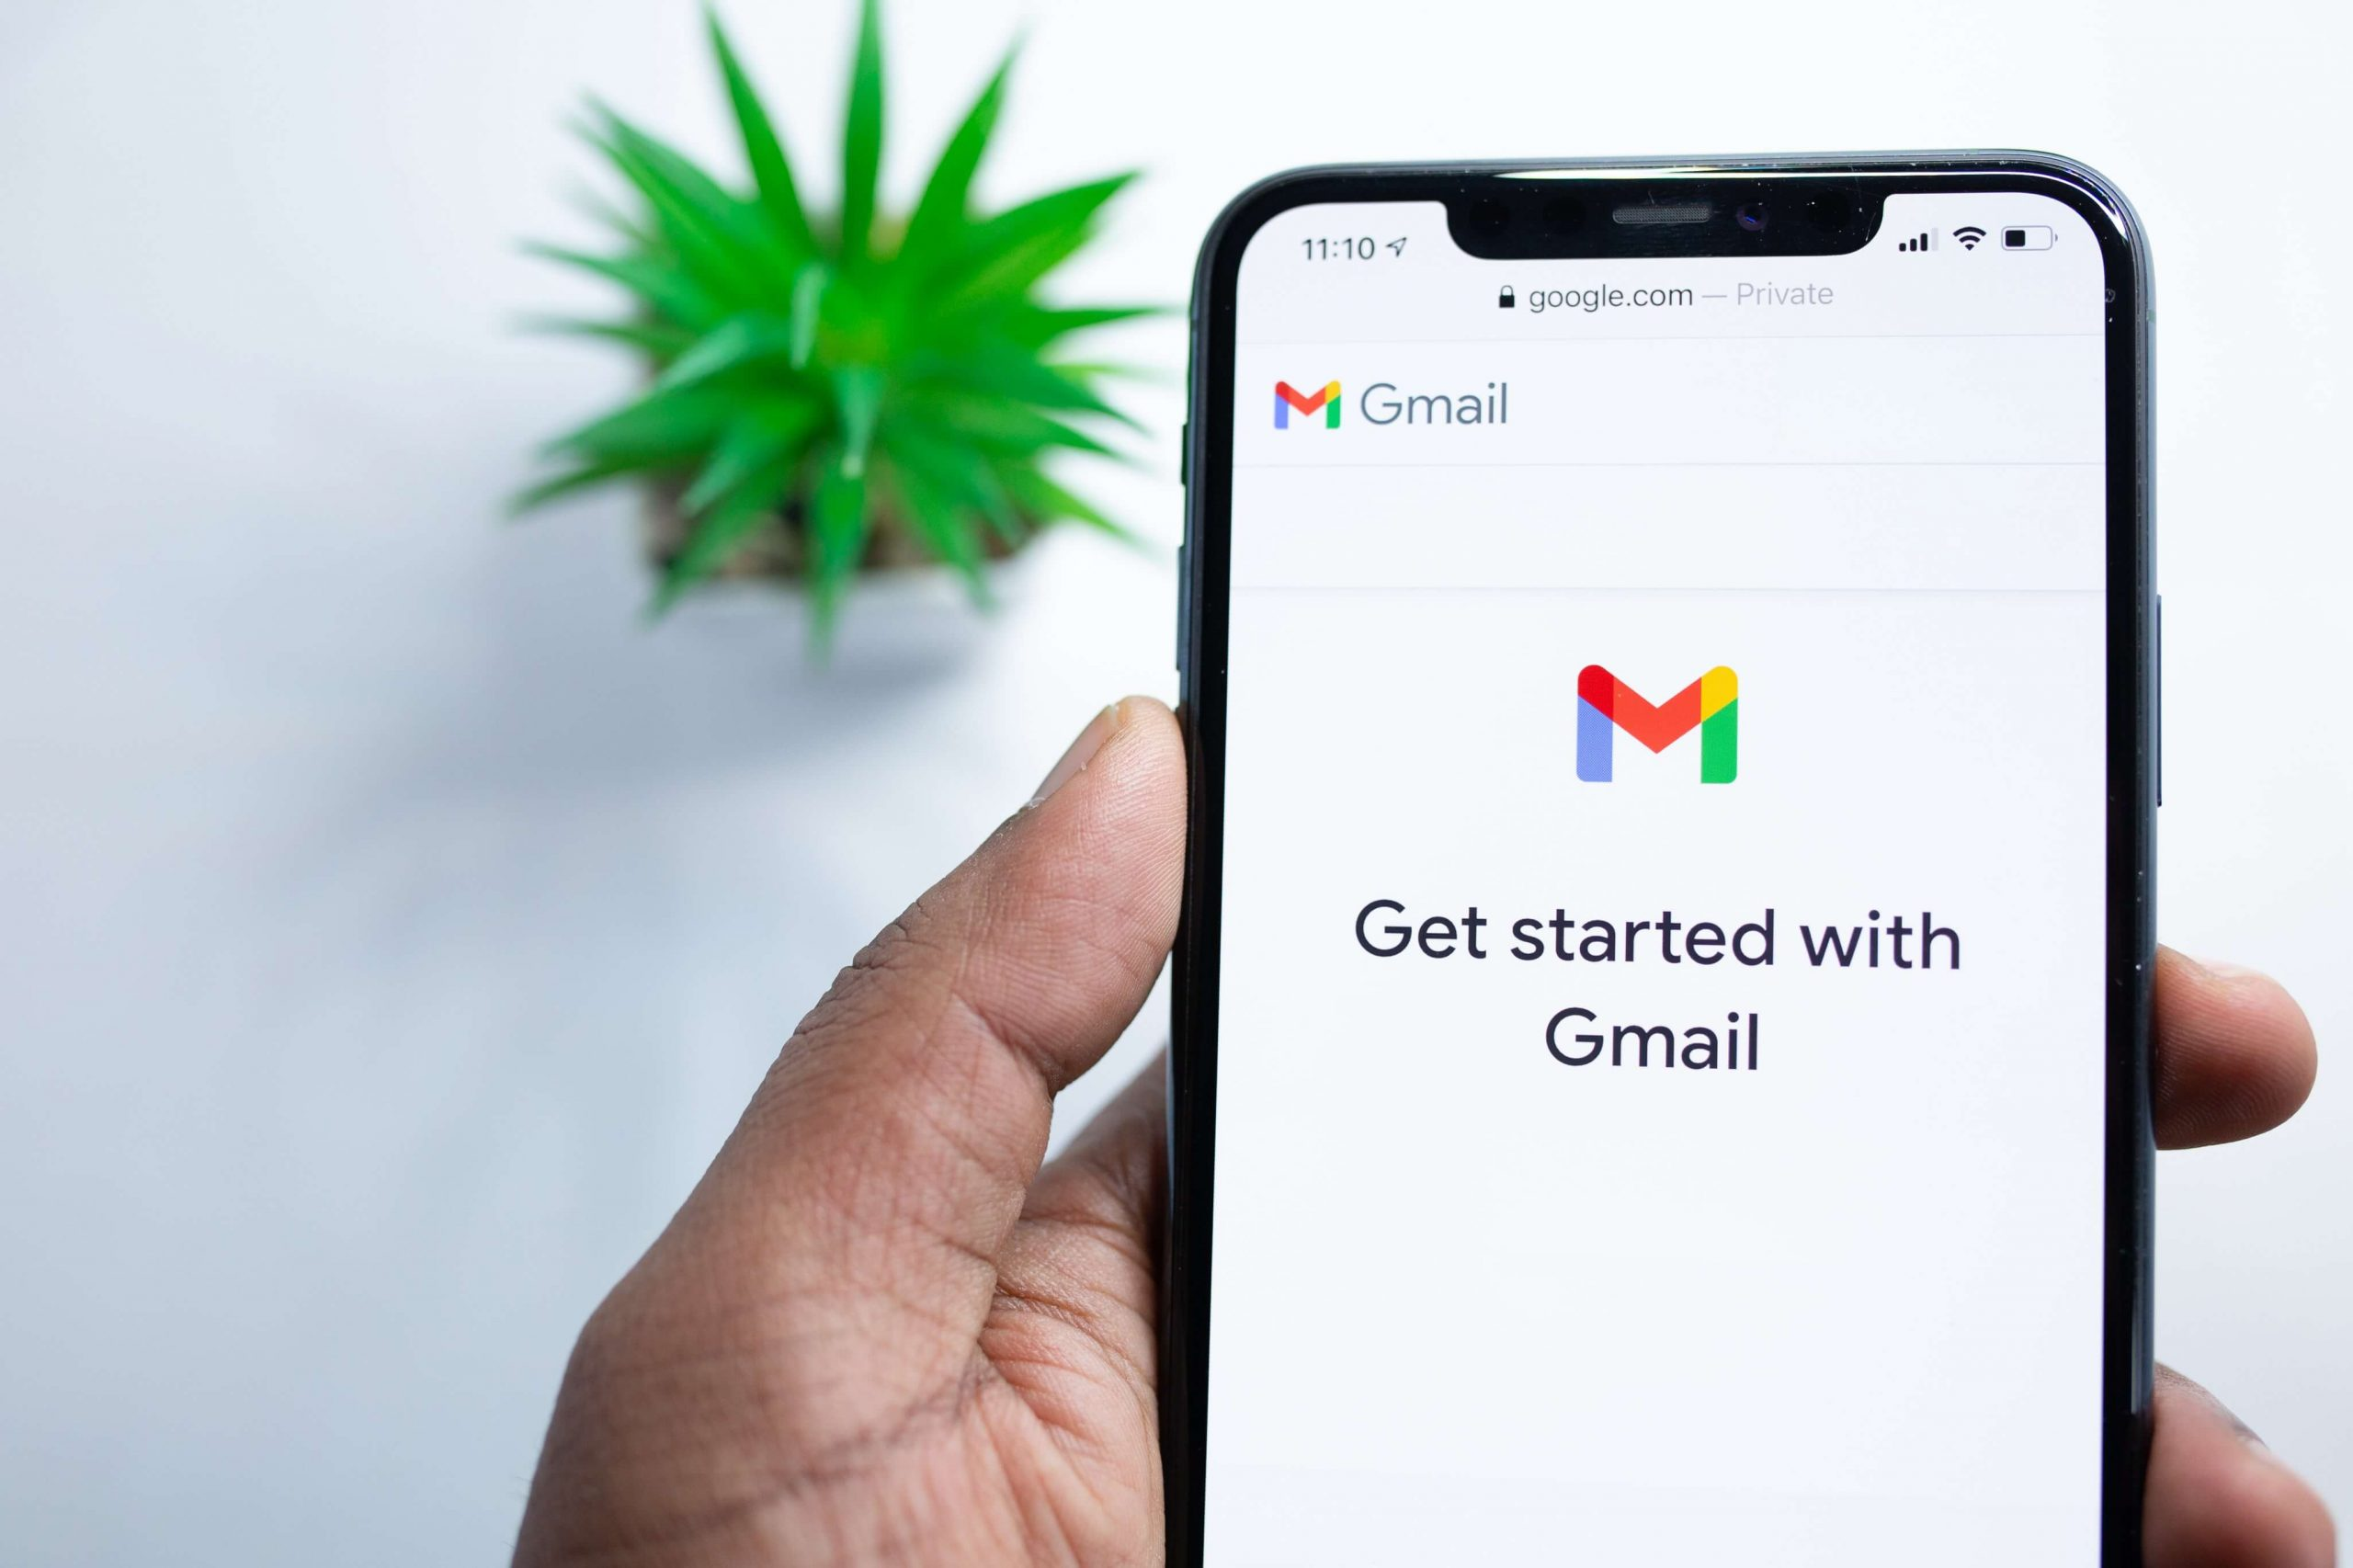 how to create a gmail account in Ethiopia